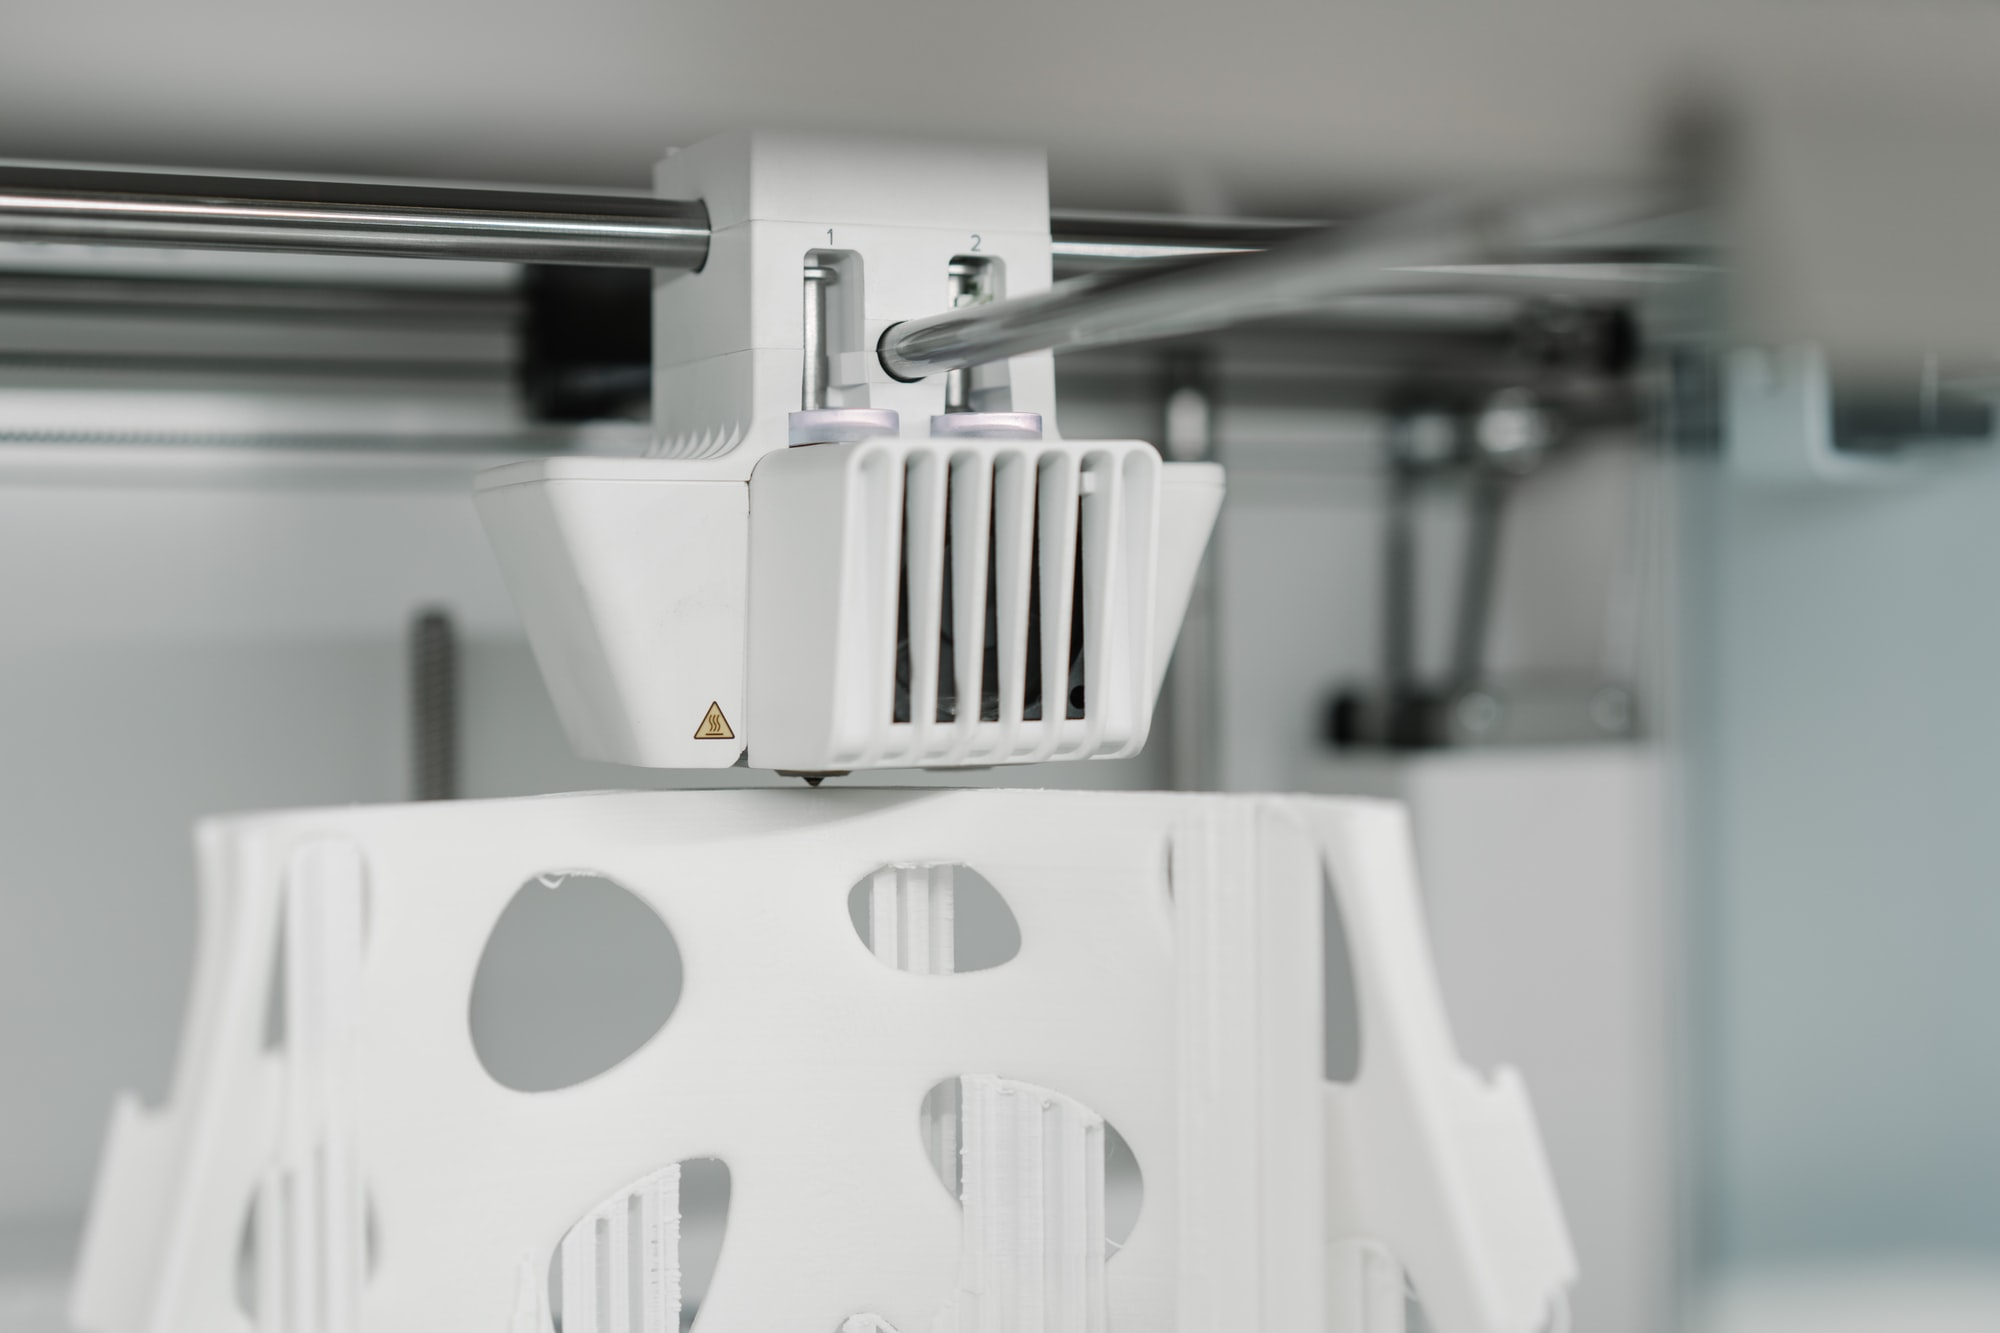 Diagnosing reduced 3D print quality when printing with Octoprint